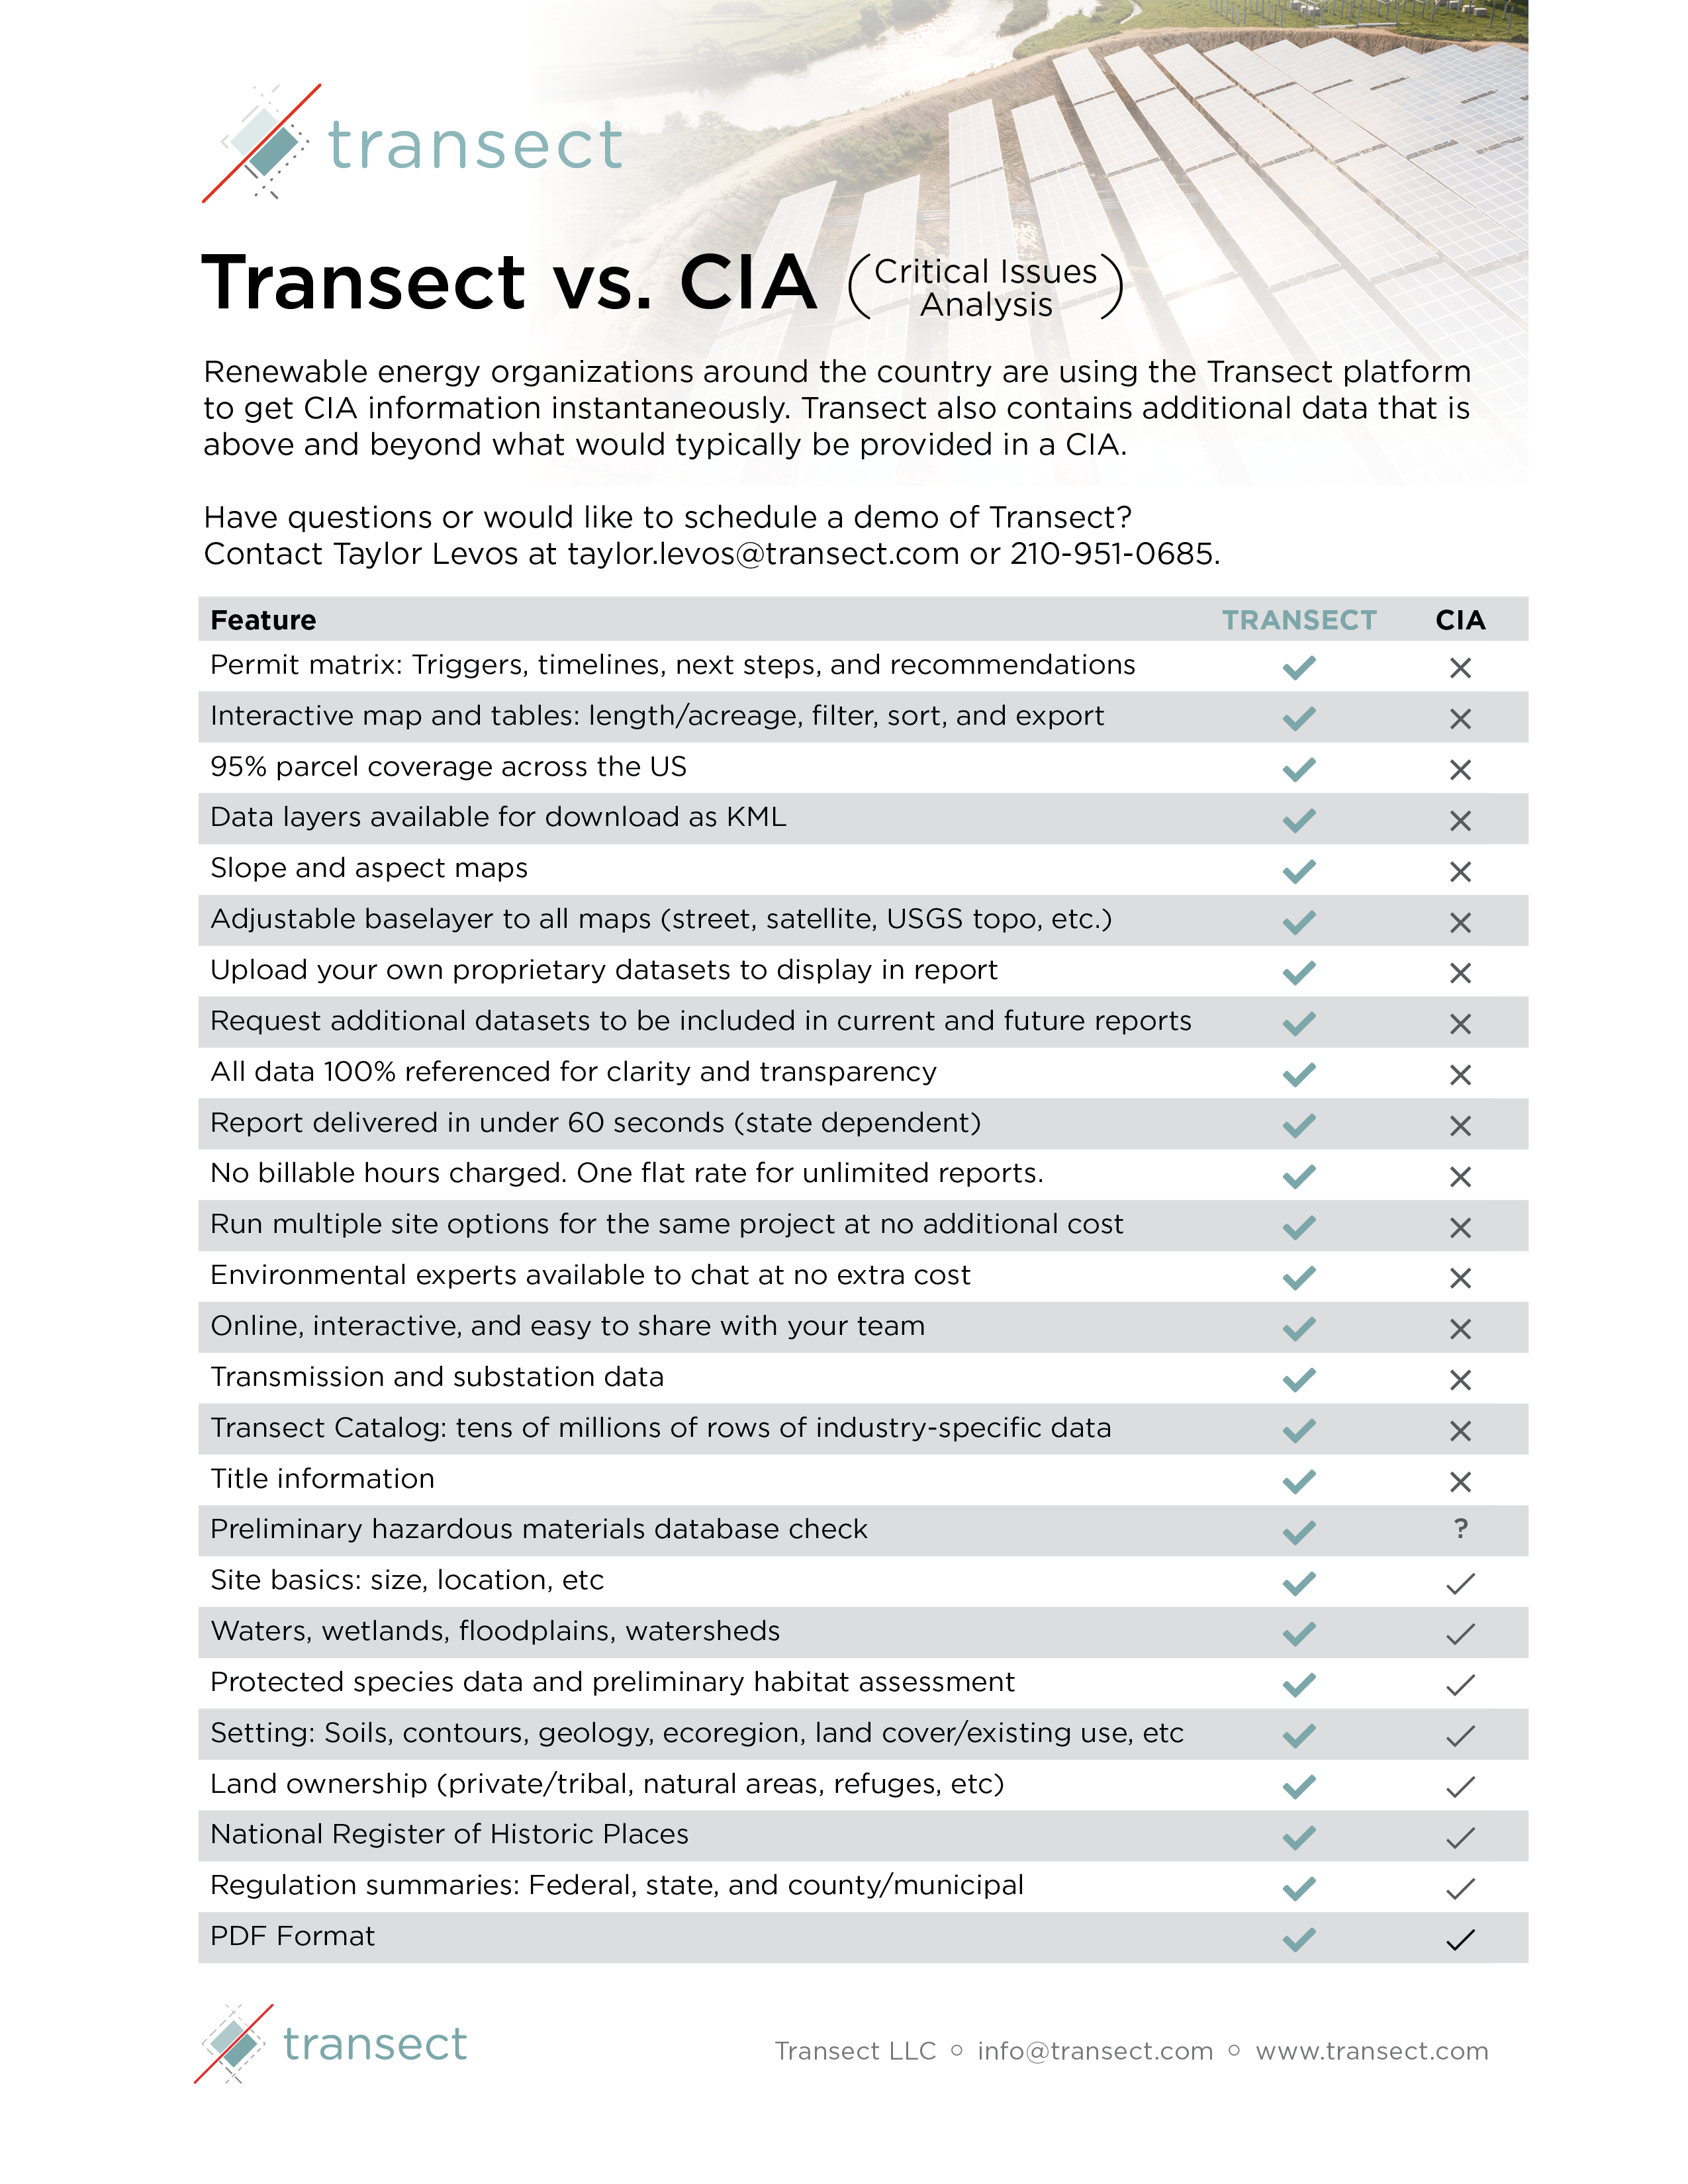 Transect vs. Critical Issues Analysis (CIA) 1-pager